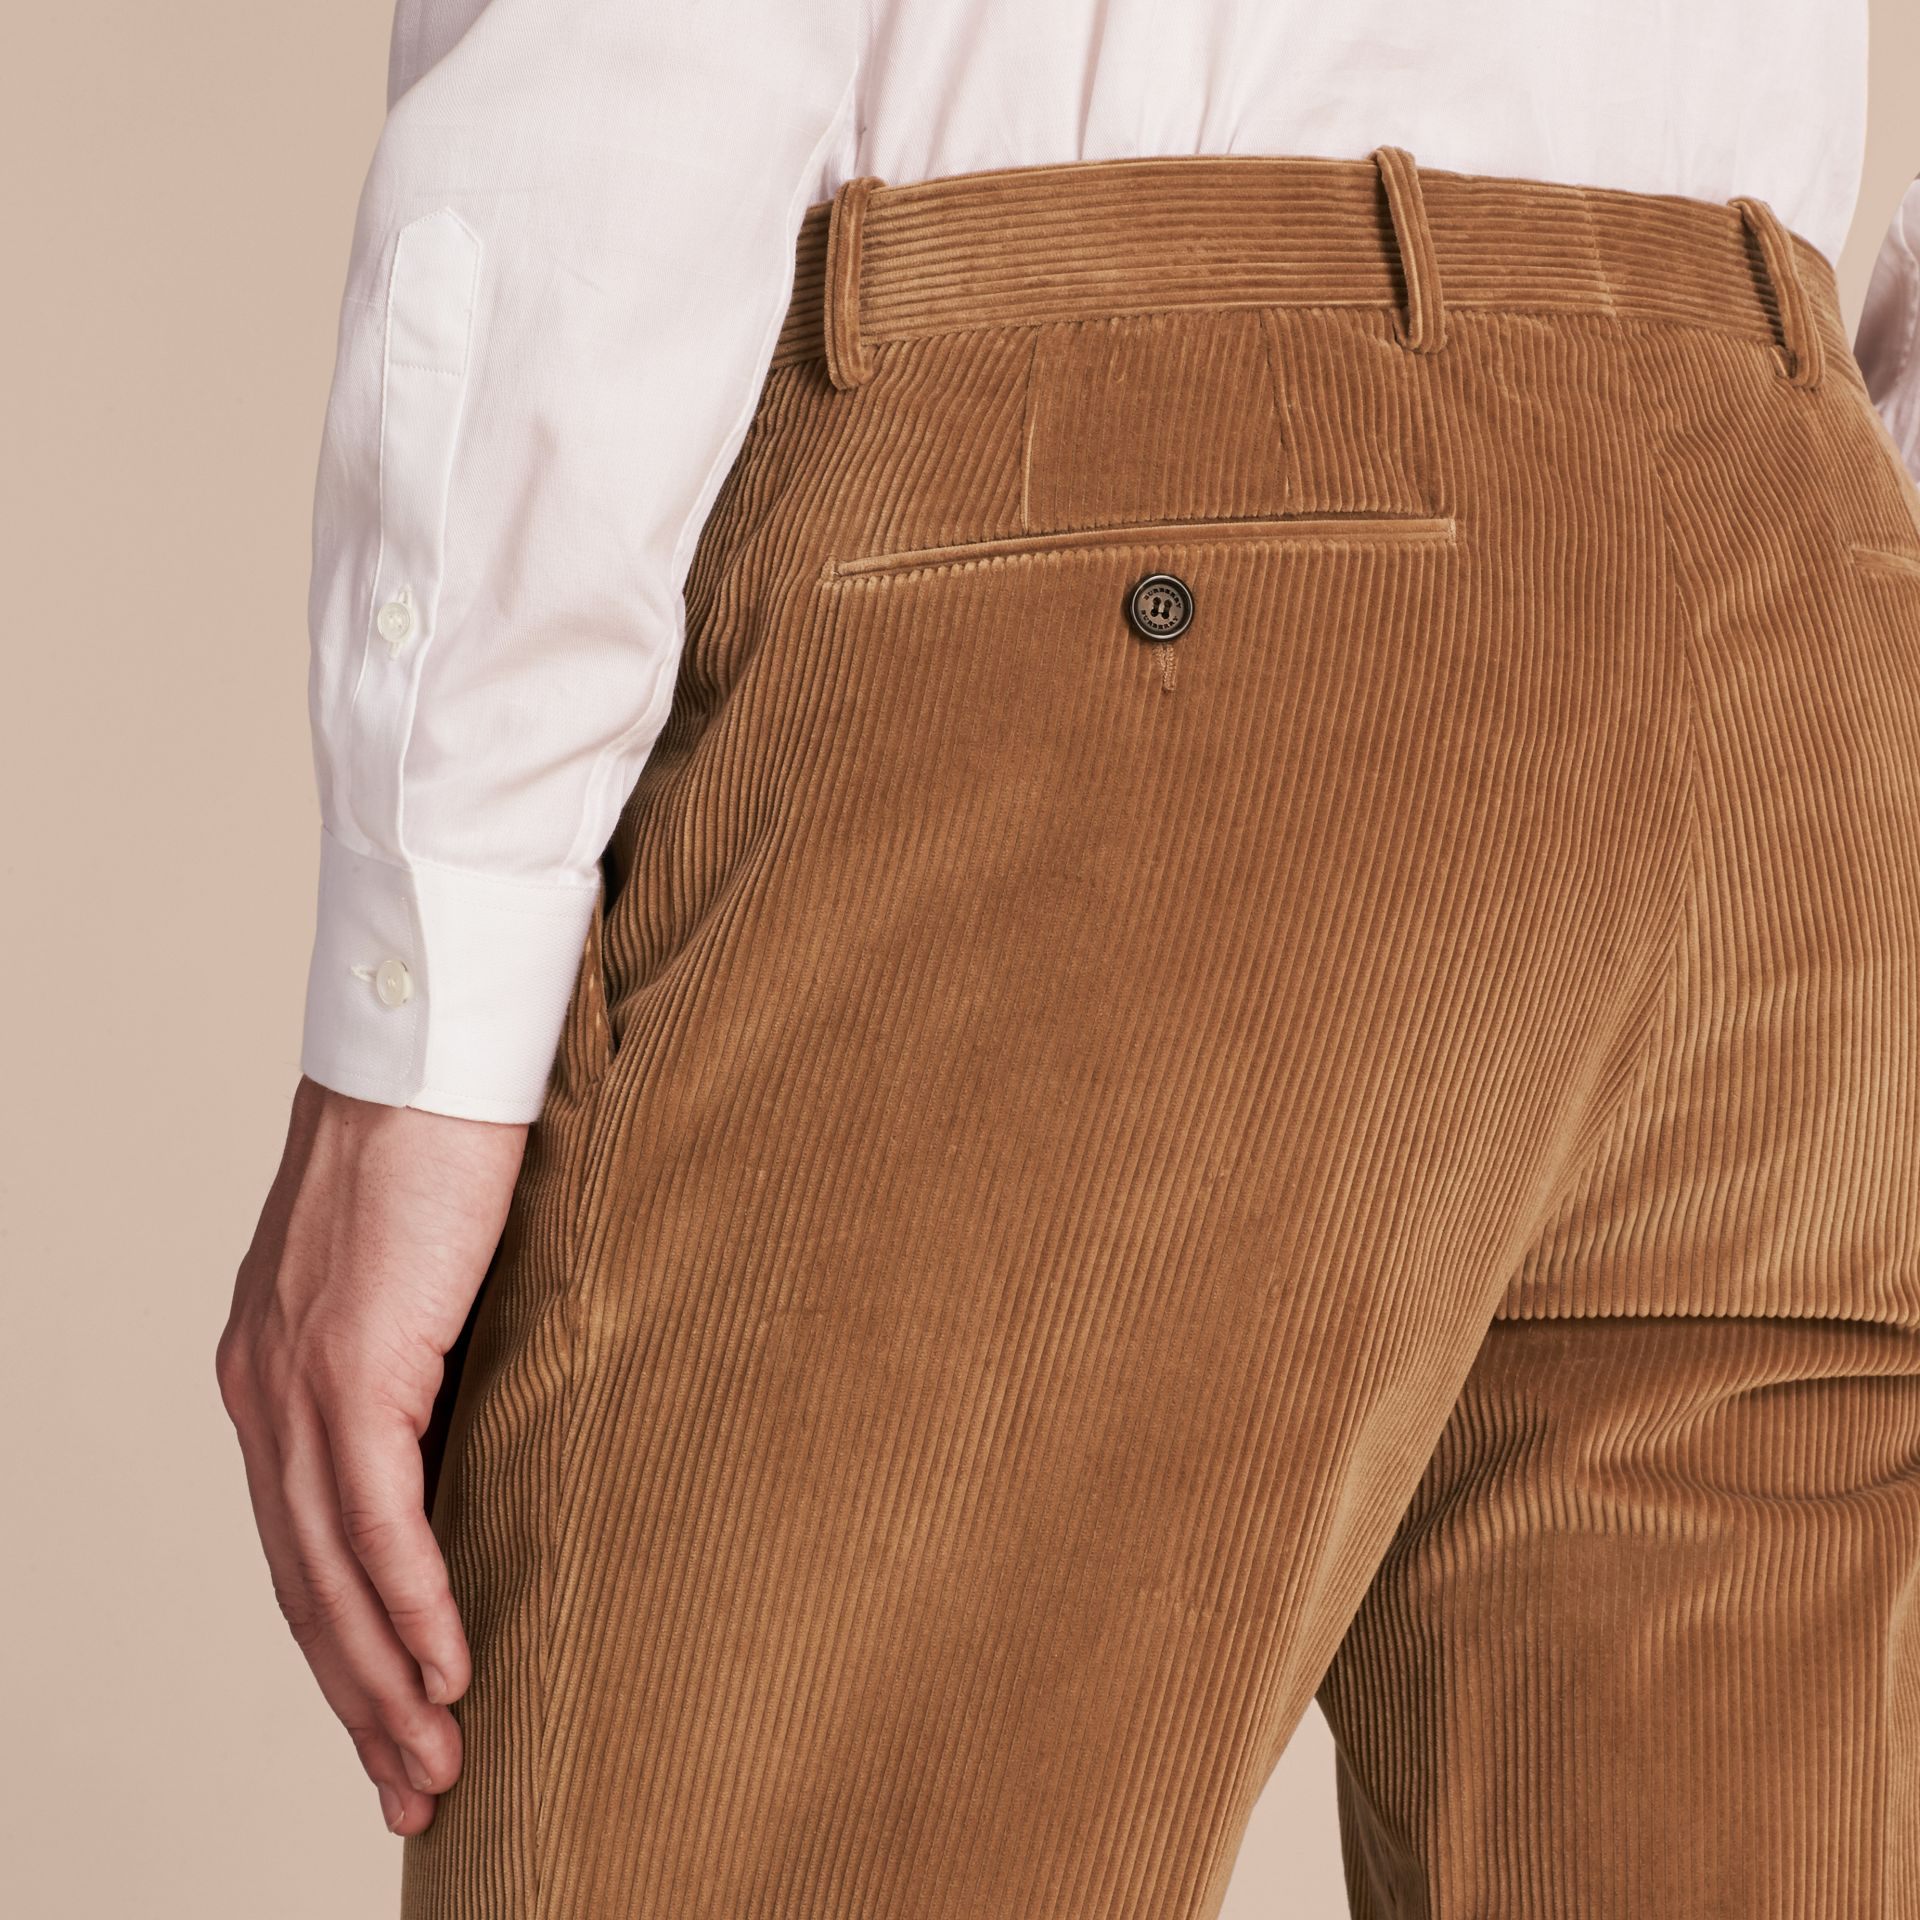 Camel Slim Fit Cotton Corduroy Trousers Camel - gallery image 5